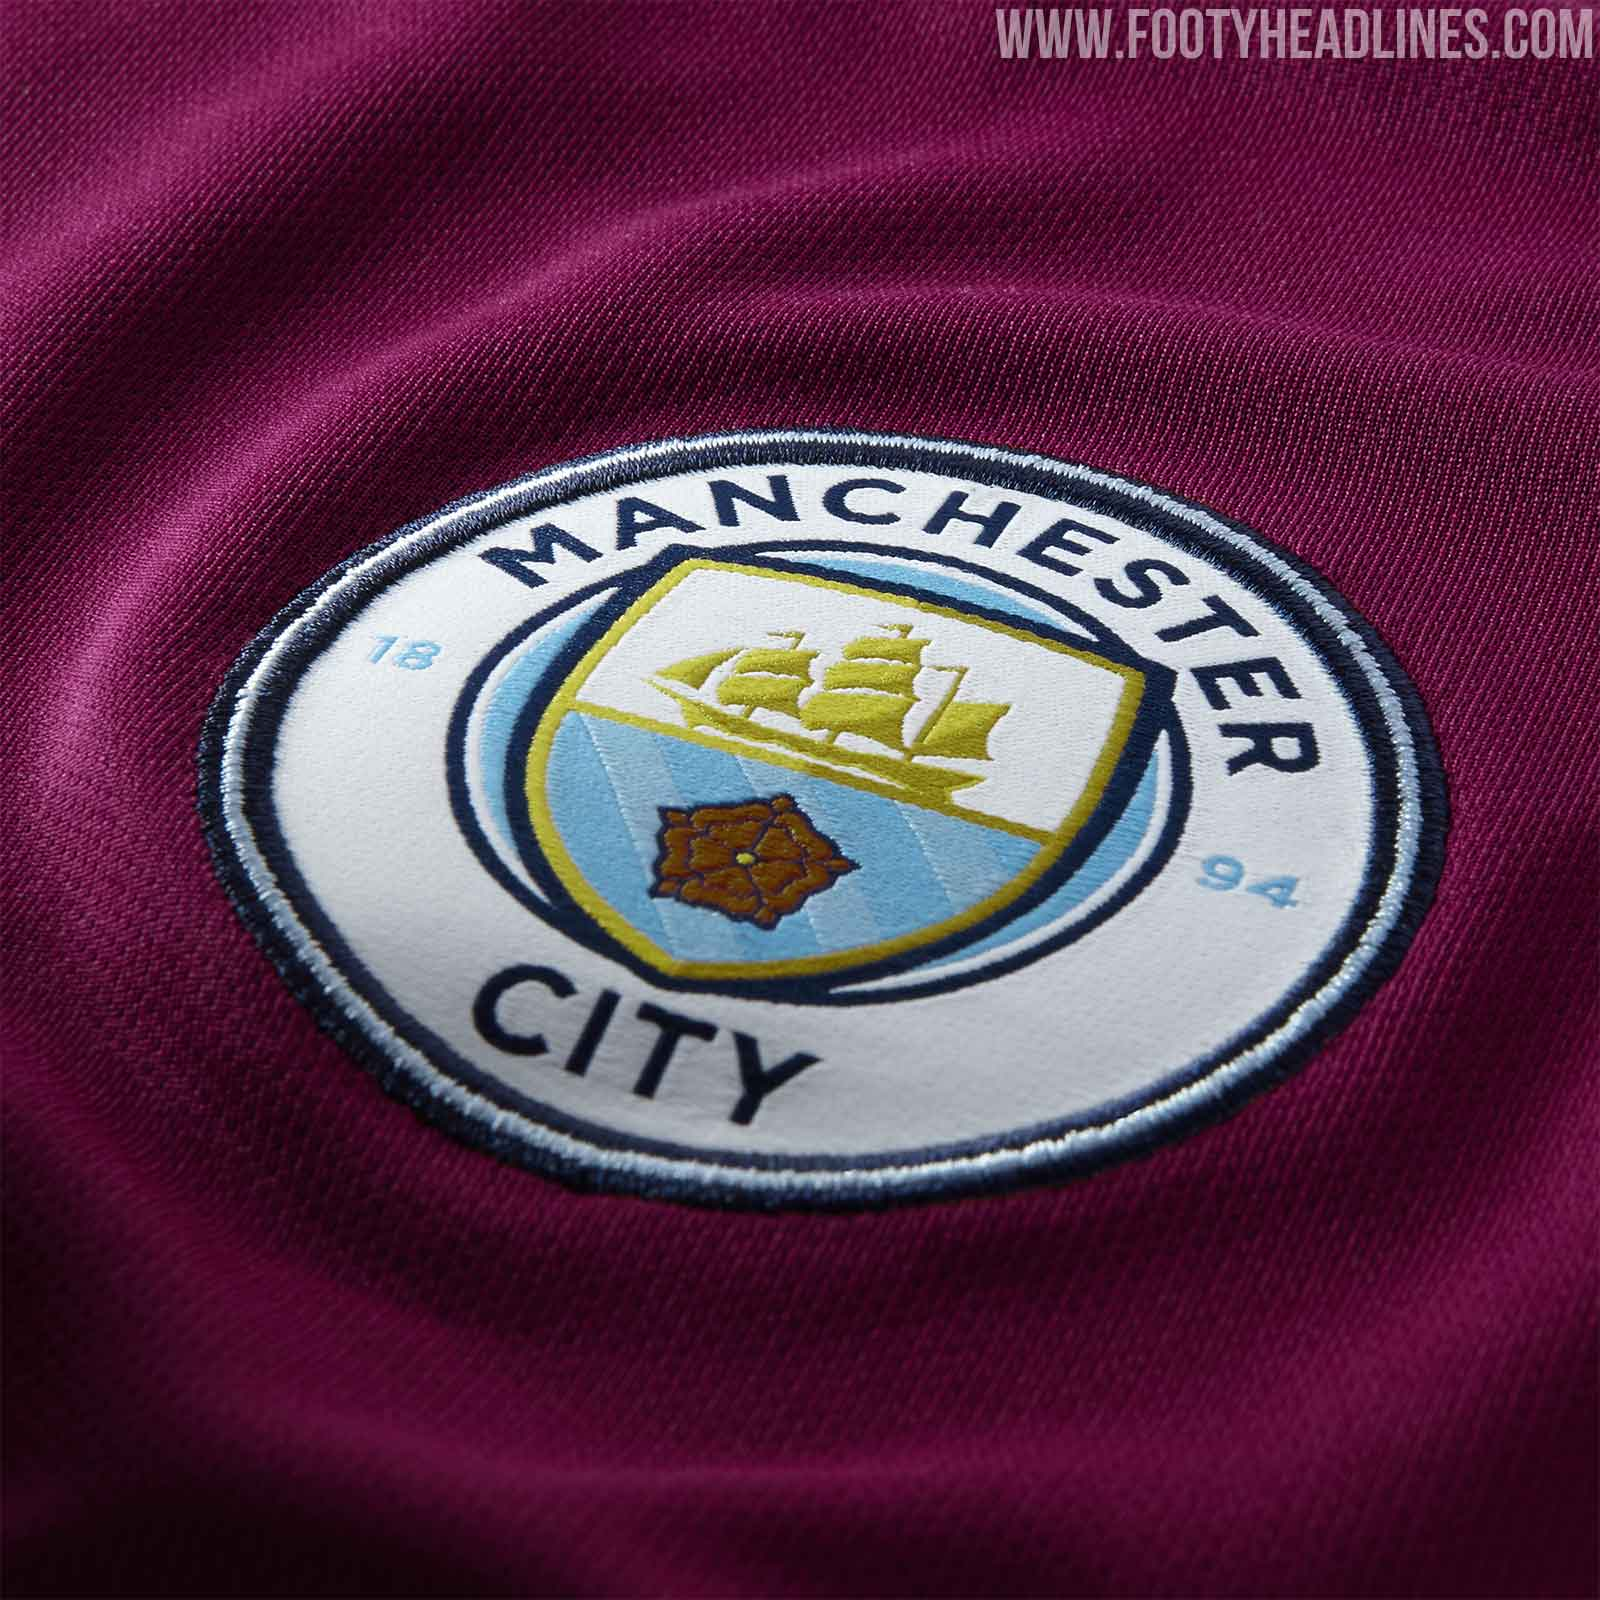 manchester city - photo #23